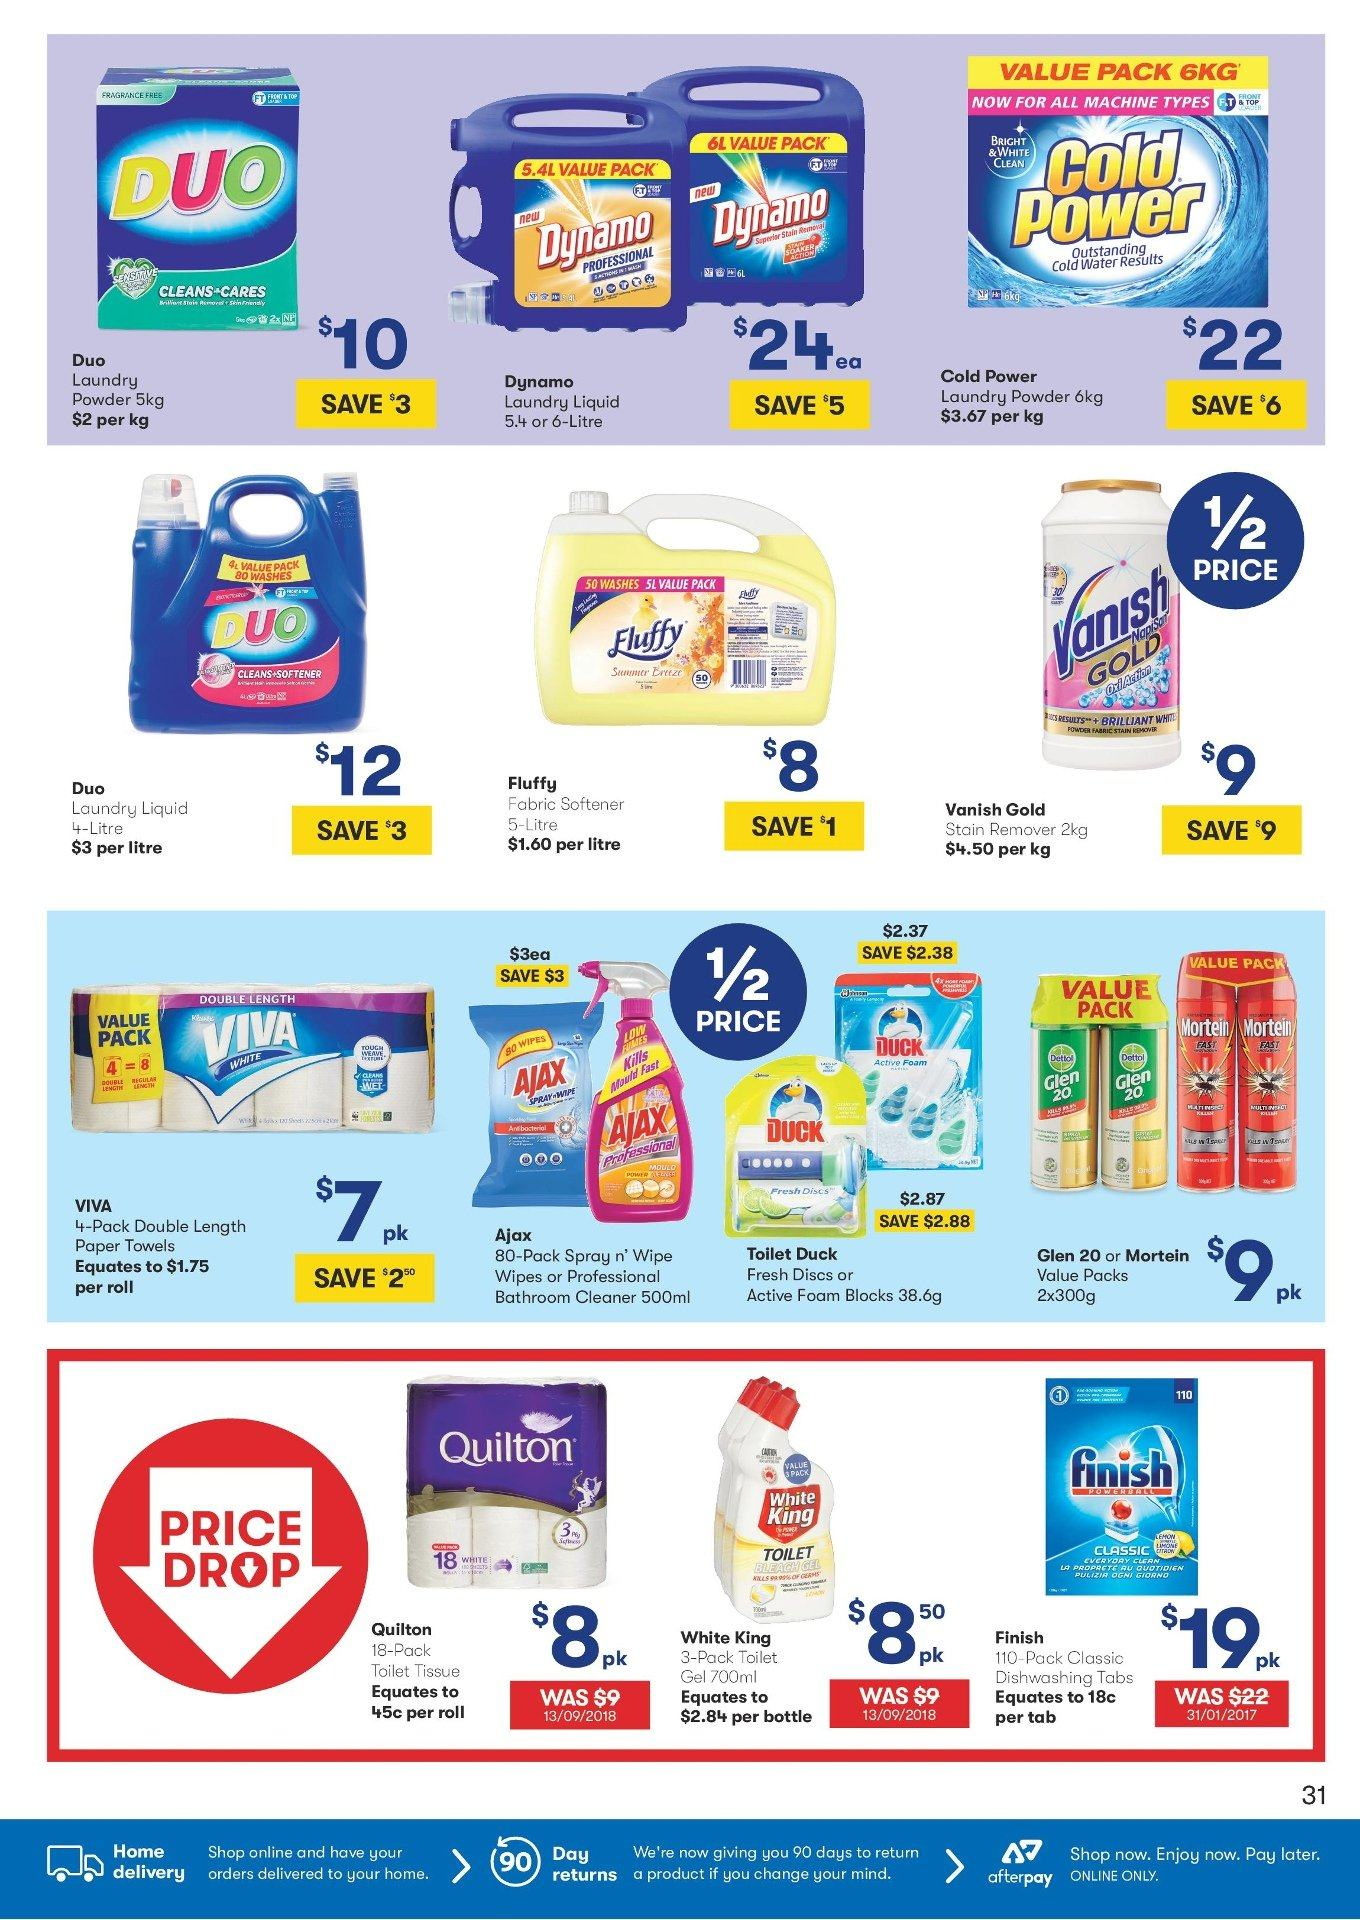 BIG W Catalogue - 31.1.2019 - 13.2.2019 - Sales products - bathroom, bottle, duck, foam, spray, toilet, towel, wipes, powder, paper towel, water, paper, softener, glen, toilet tissue. Page 31.